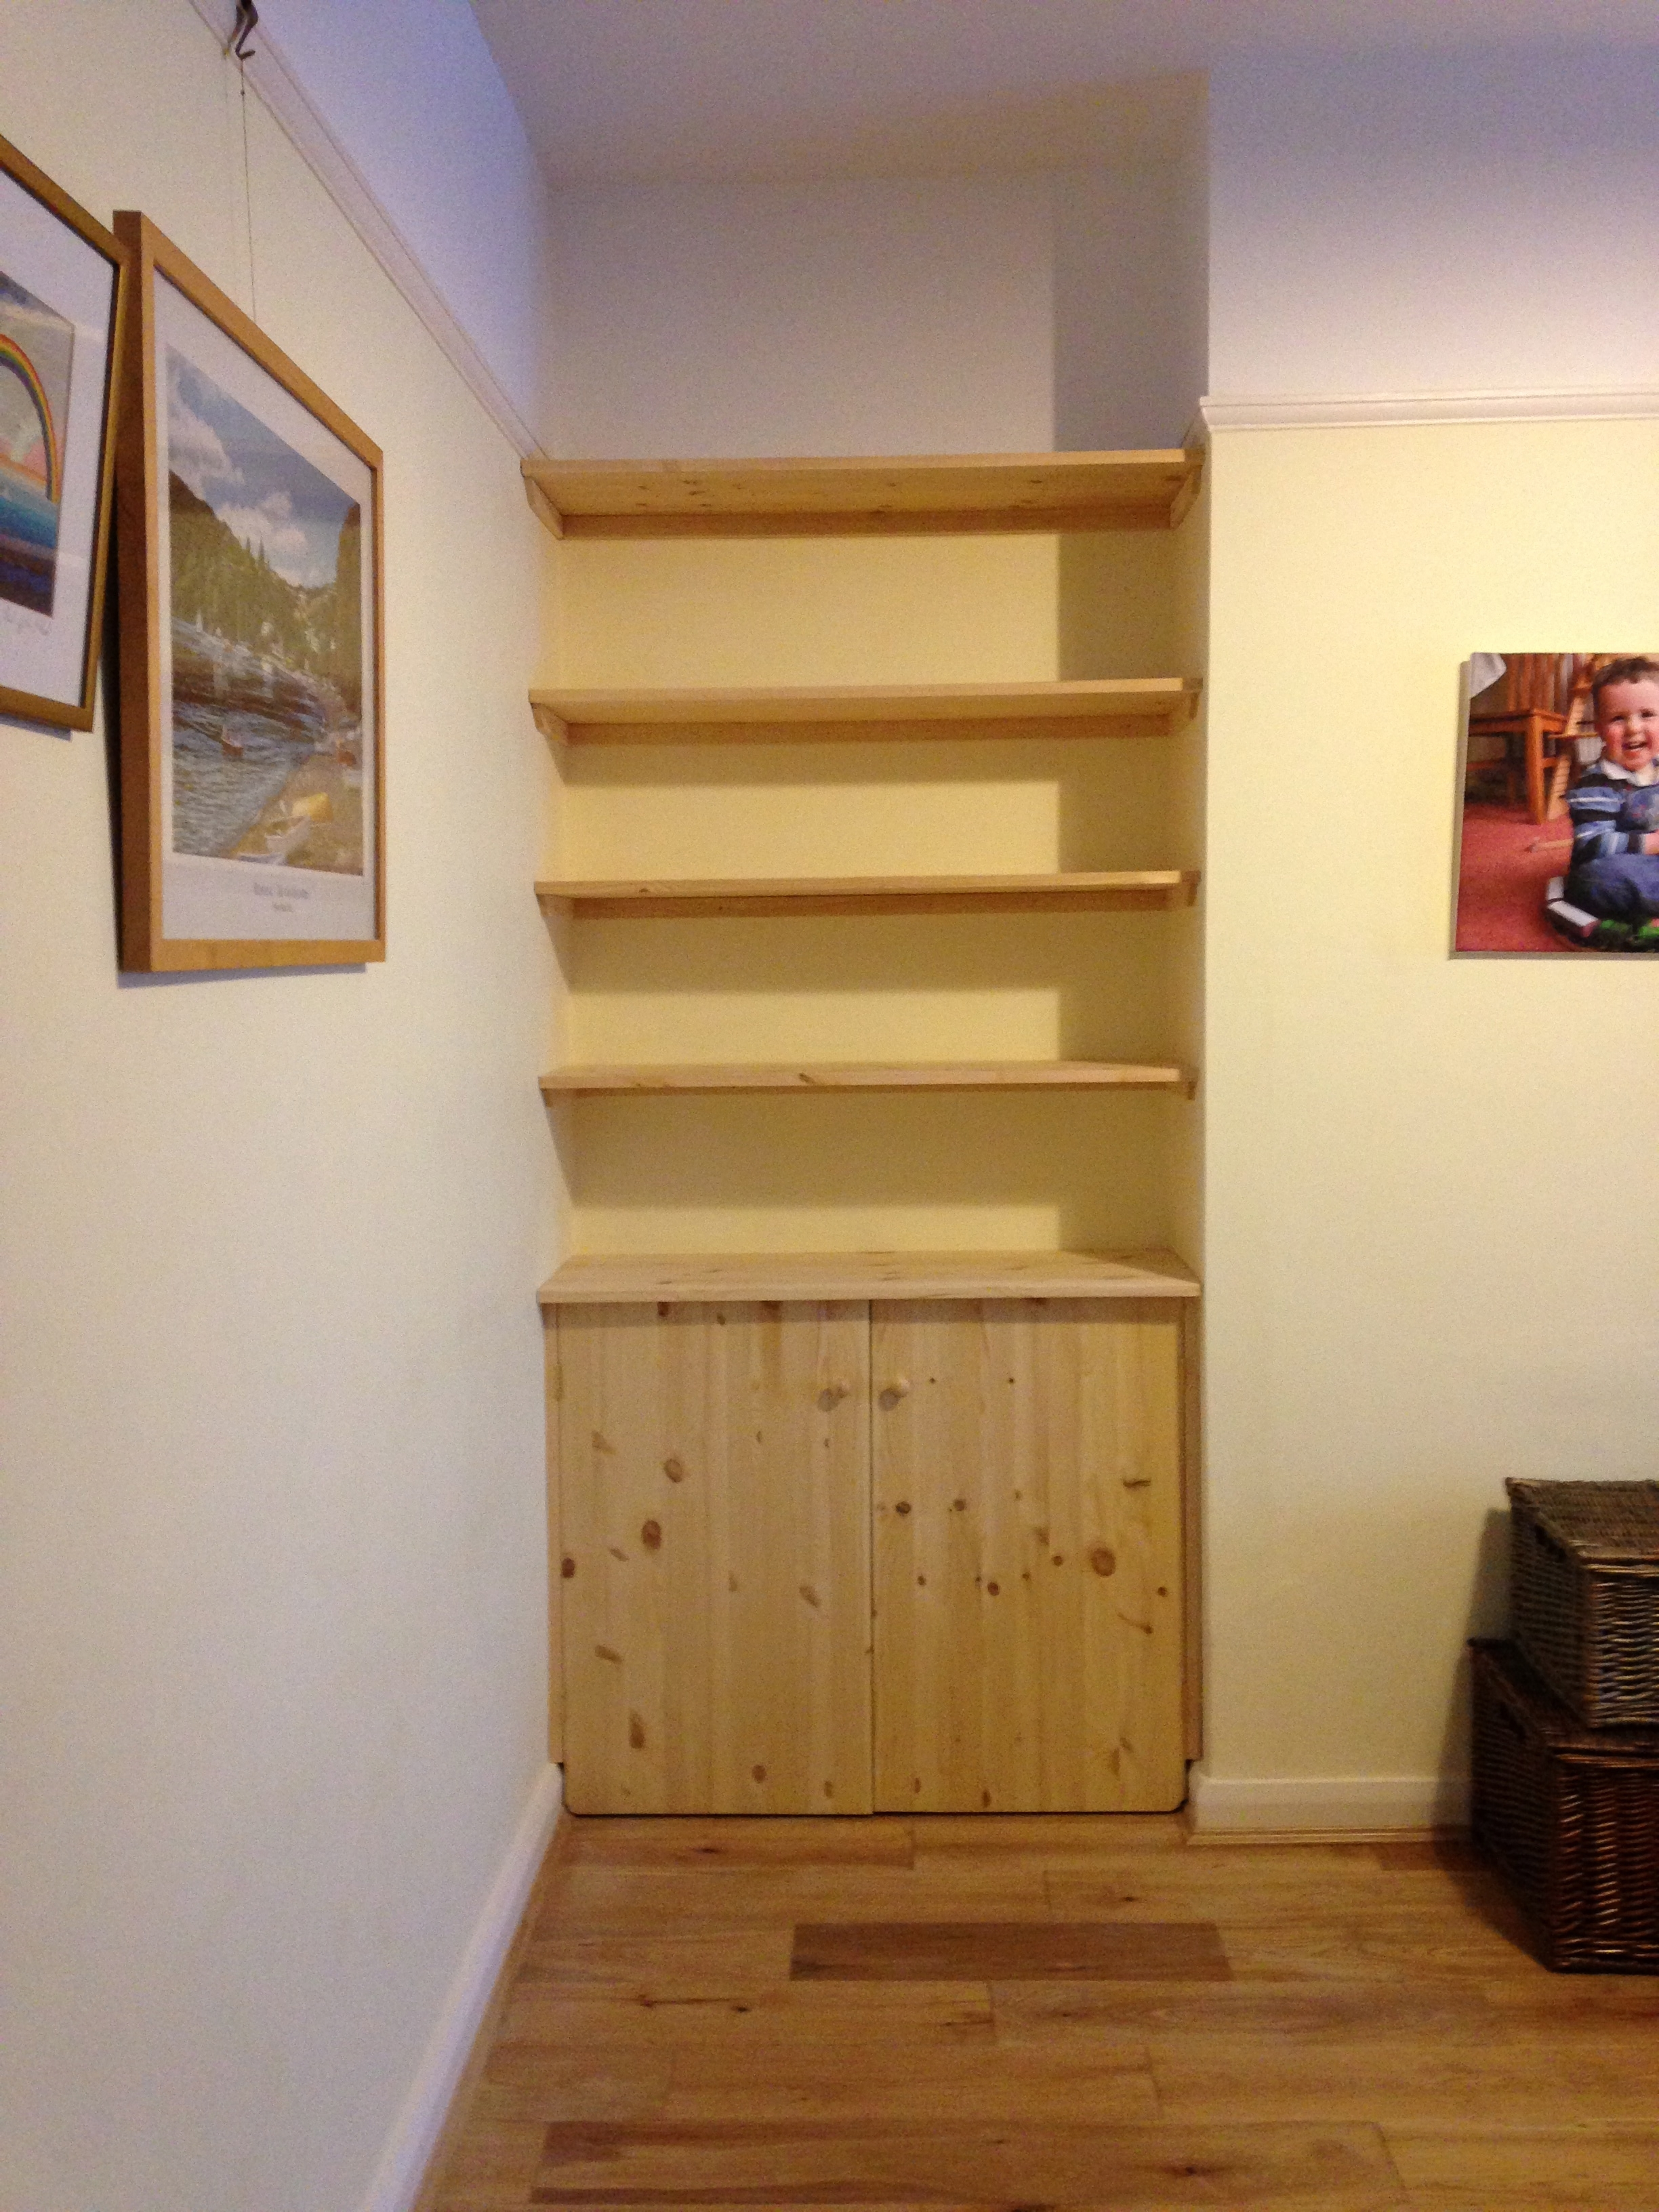 Fitted Shelving Cupboards And Flooring P D Carpentry Building Within Fitted Shelves And Cupboards (View 12 of 12)